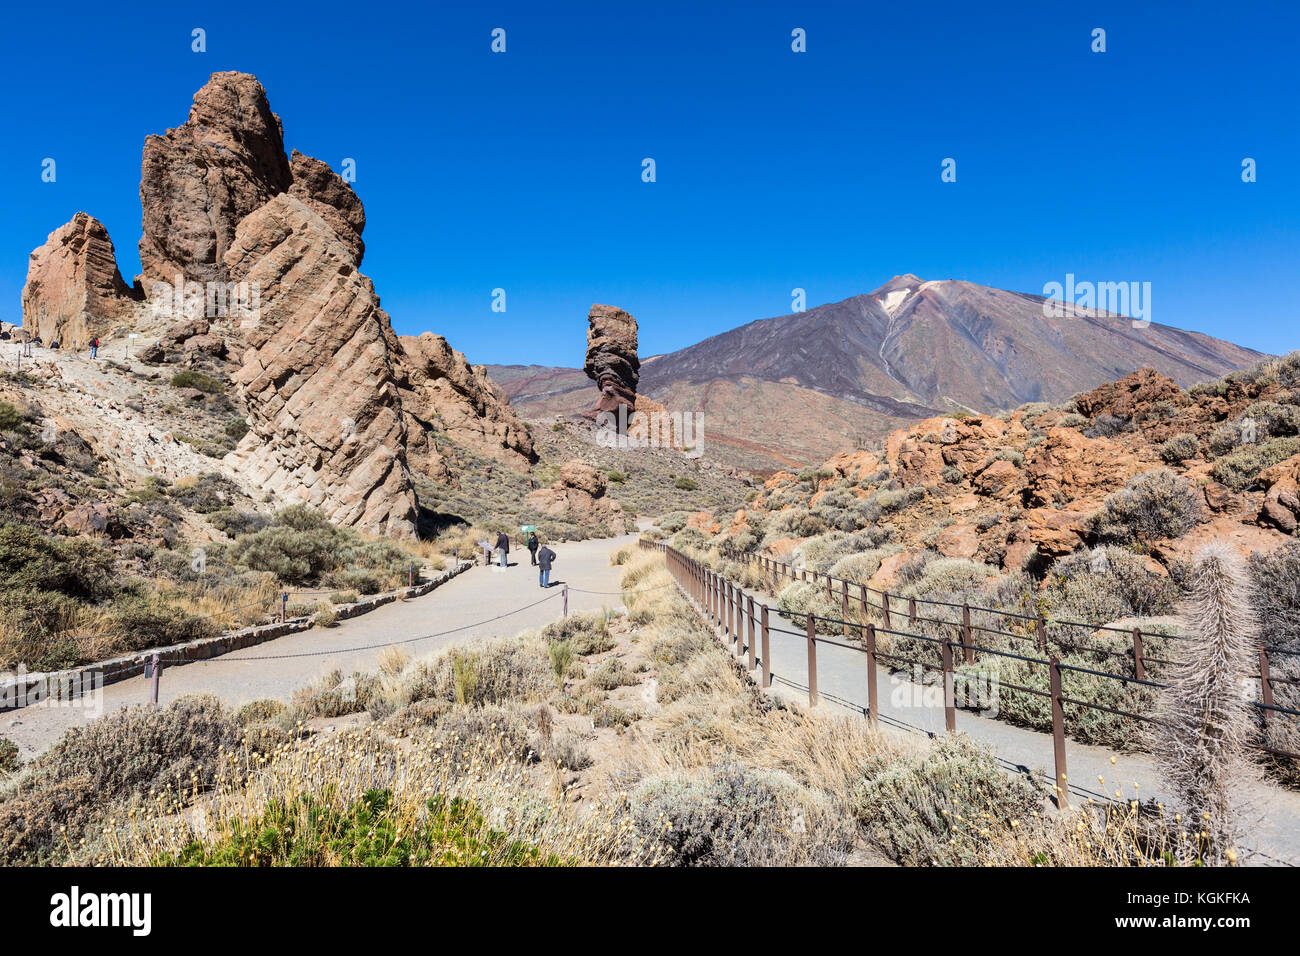 Routes in the Teide National Park, behind volcano Teide, Tenerife, Canary Islands, Spain - Stock Image